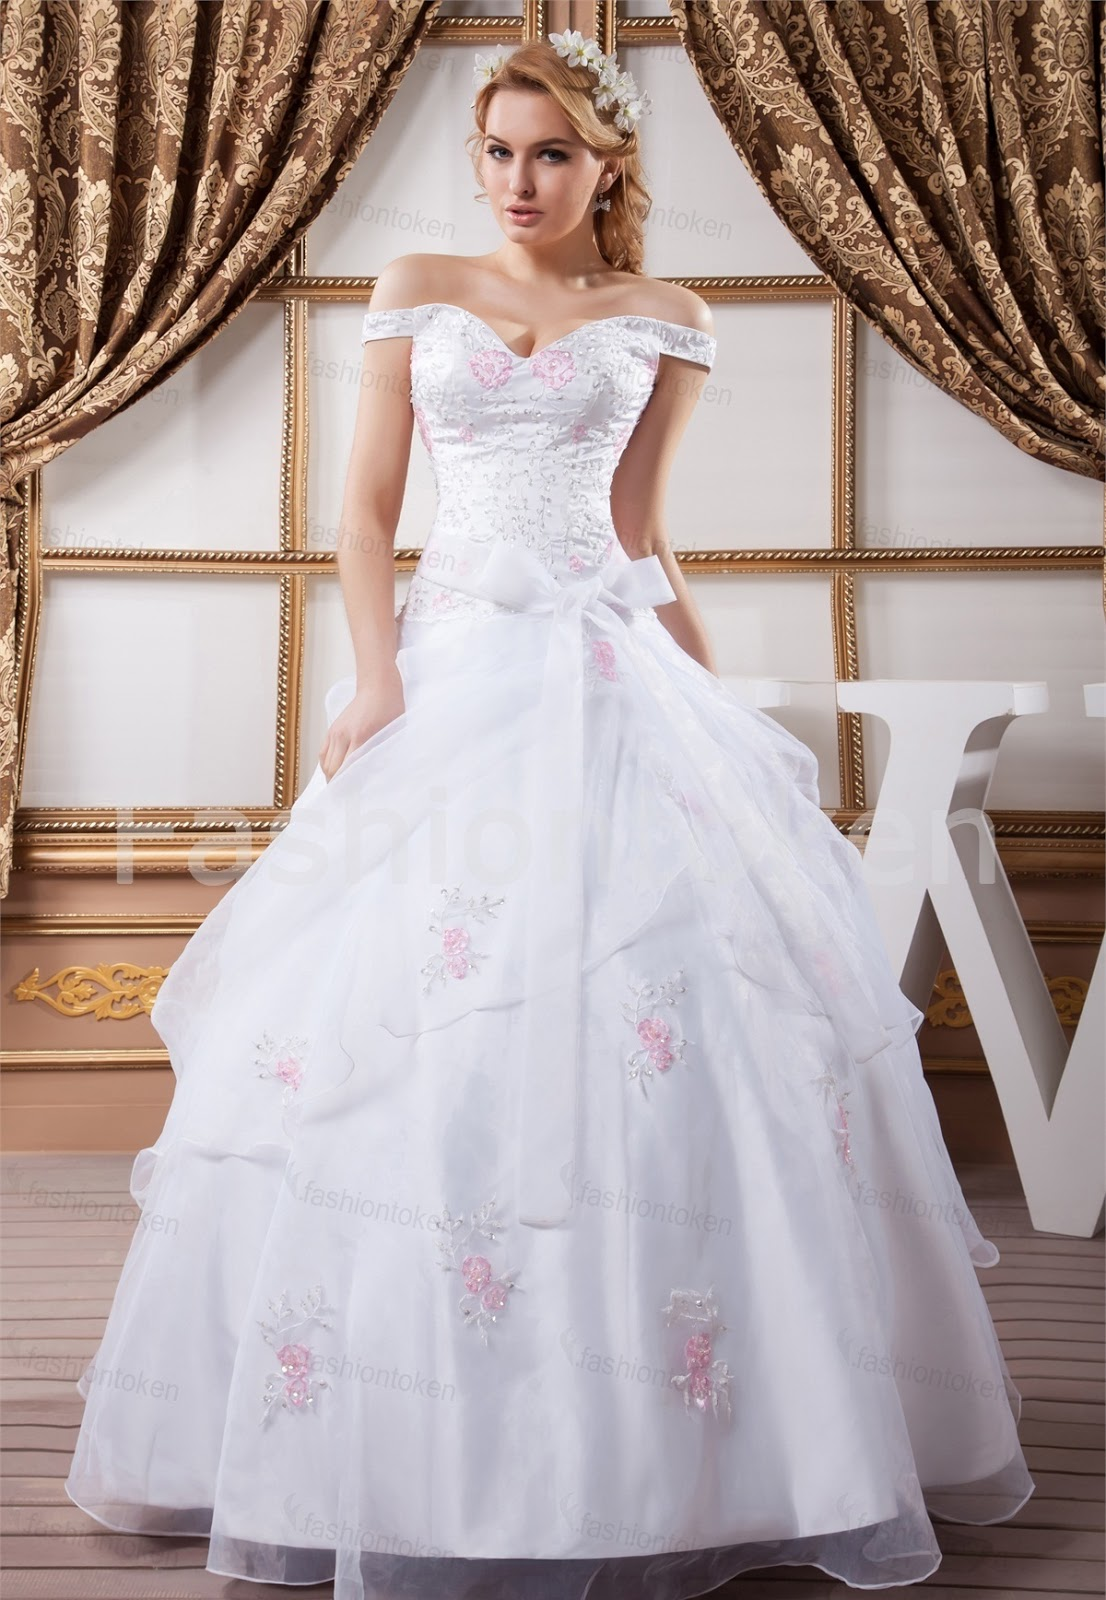 Lovely wedding dresses mother of the bride dresses explore val brandners board lovely wedding dresses on pinterest a visual bookmarking tool that helps you discover and save creative ideas see more ombrellifo Image collections